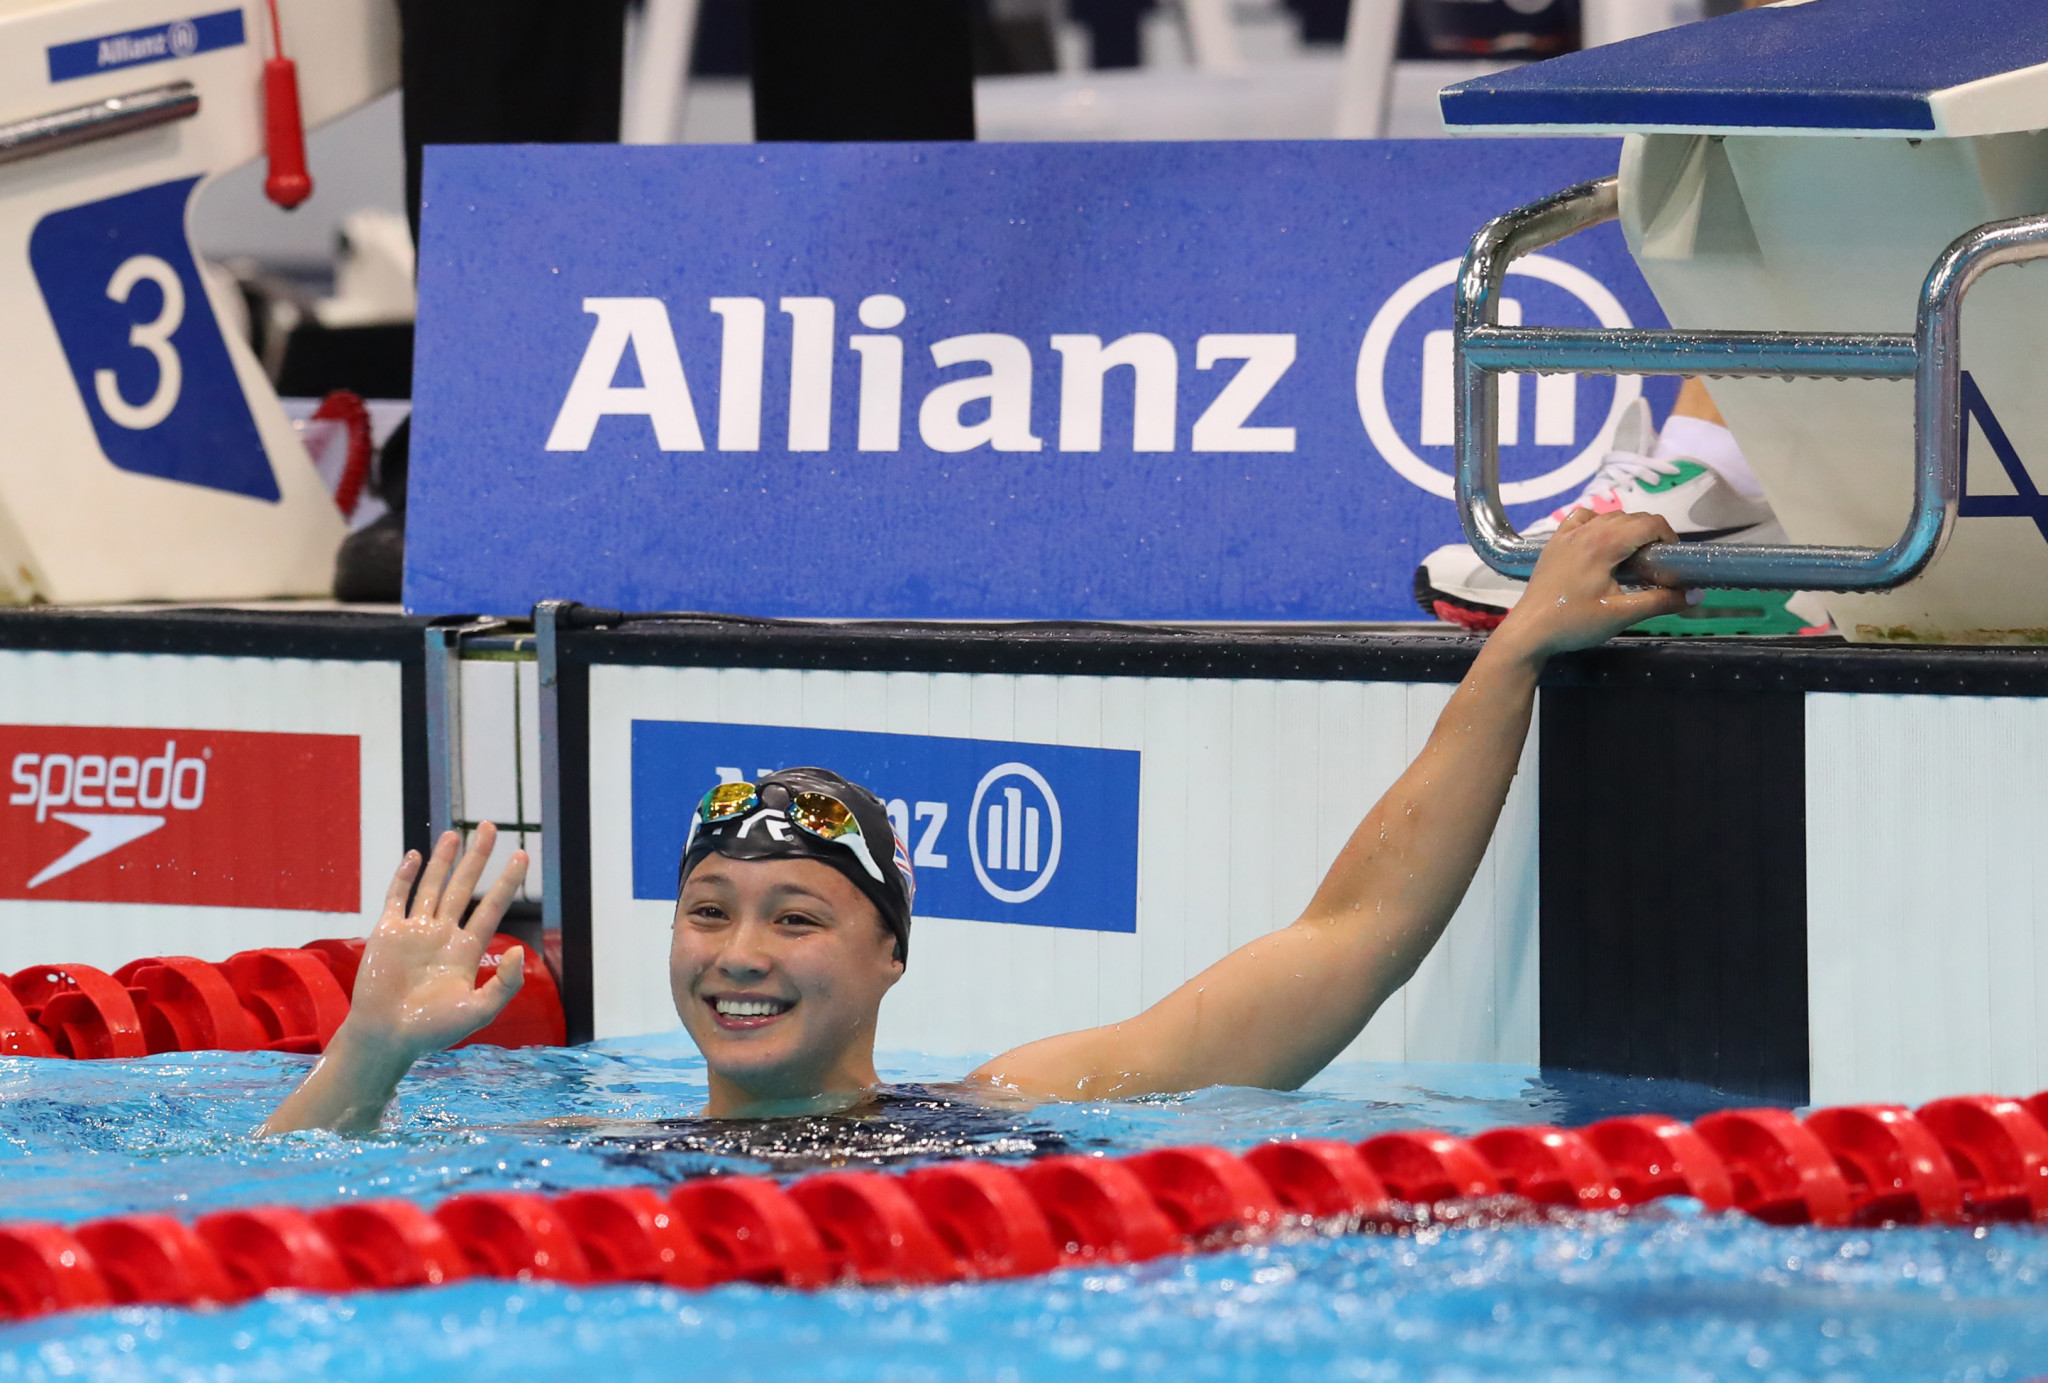 Para-swimming world champion Alice Tai did an Instagram Live with boyfriend Simone Barlaam ©Getty Images